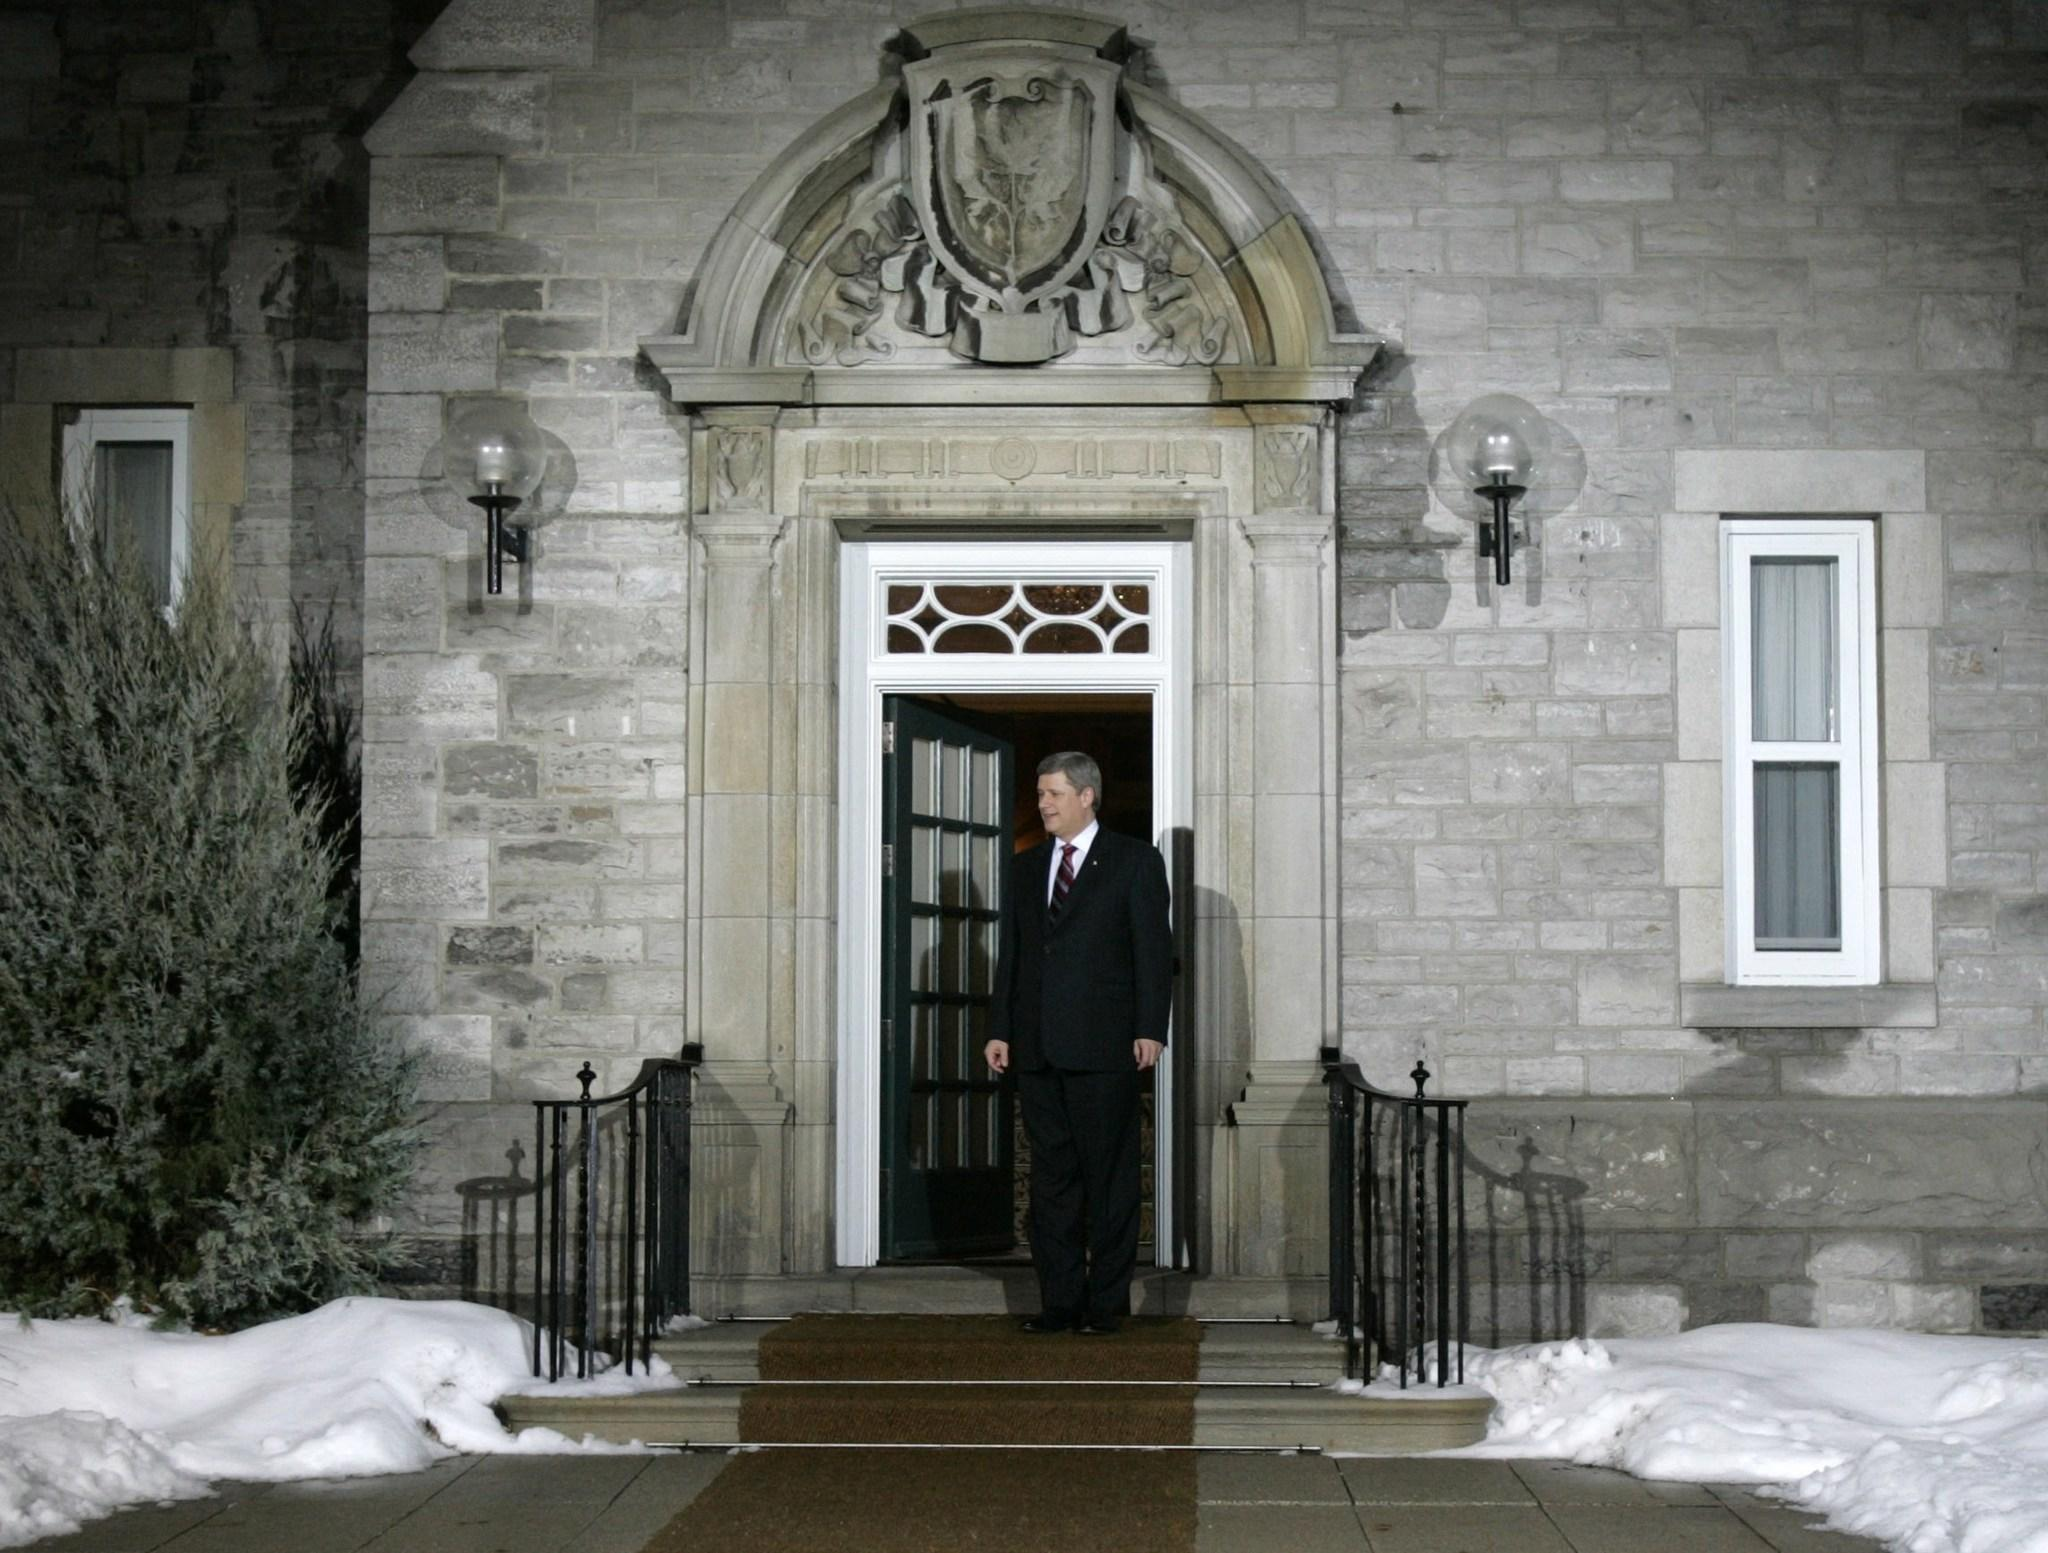 Paramedics were called to Harper's residence Sunday, police and municipal officials said on Wednesday. Circumstances of the emergency were unclear.